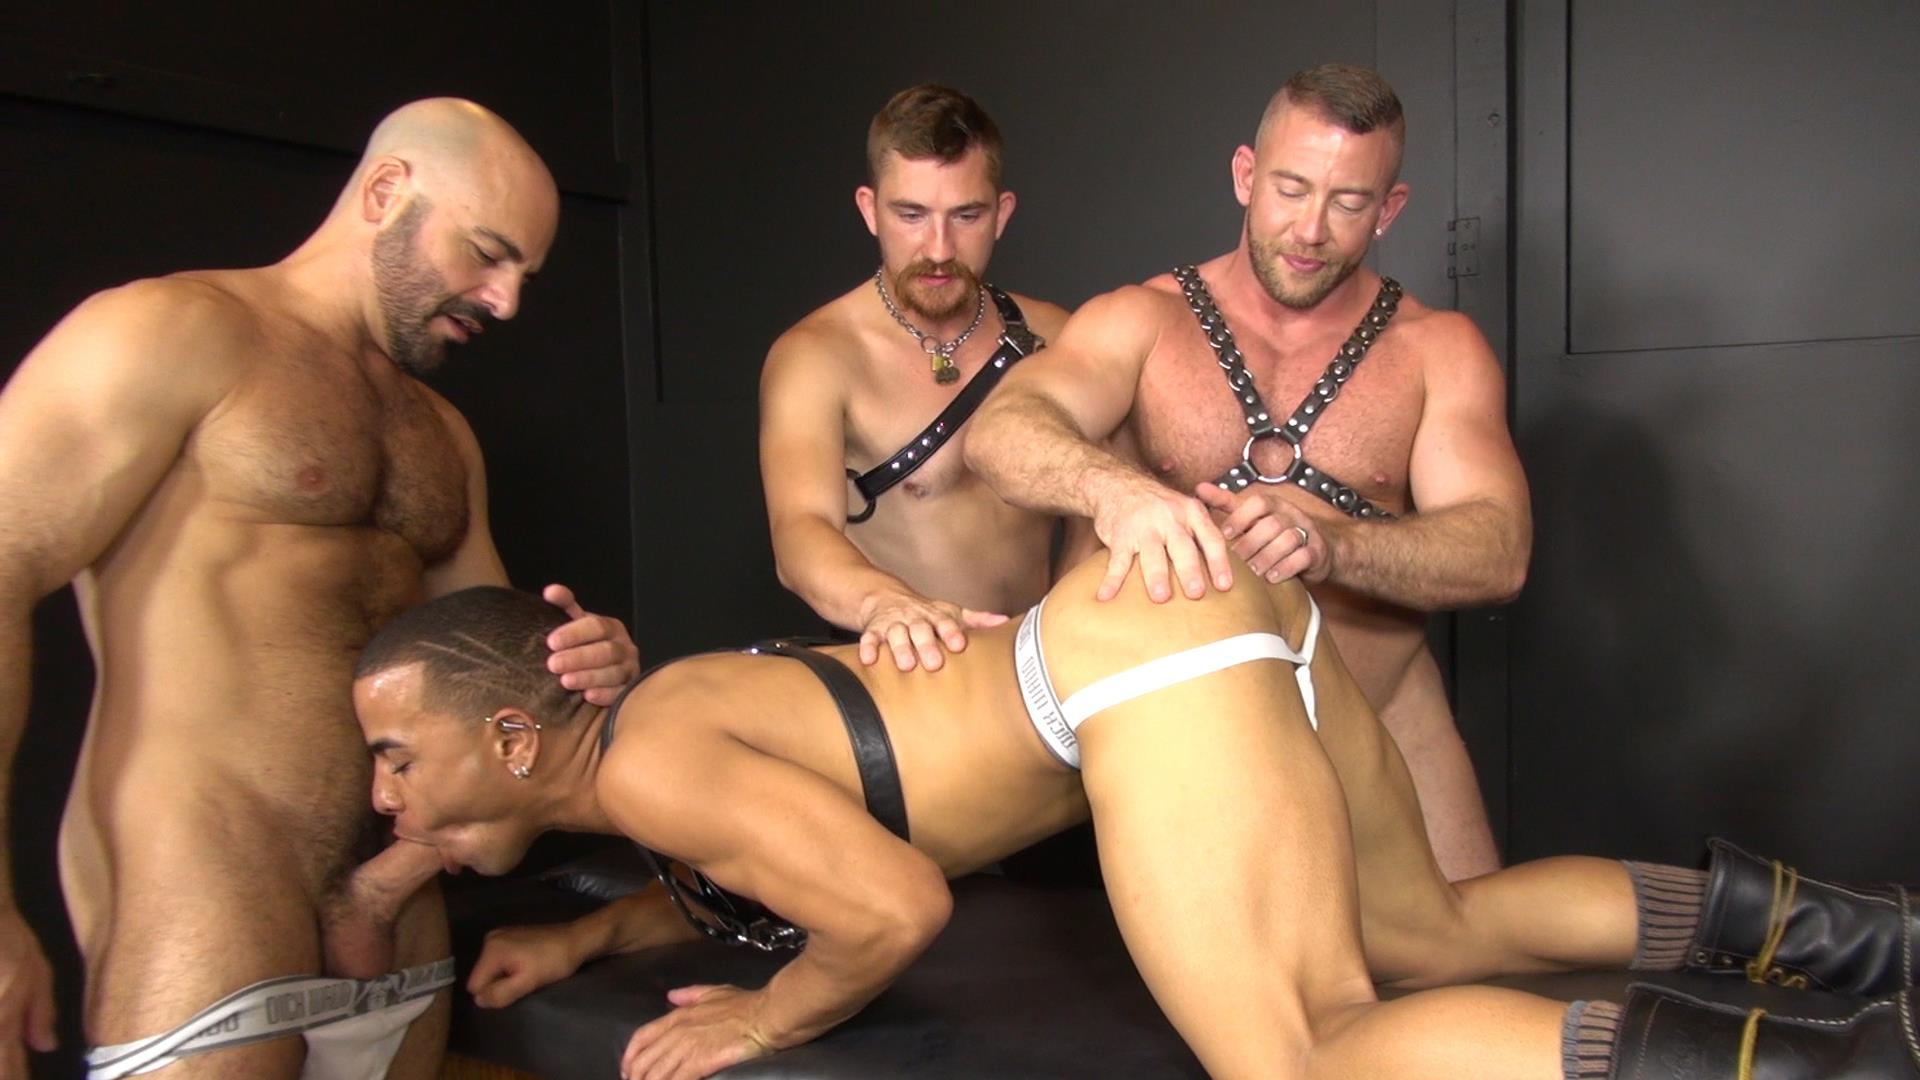 Gay Group Orgy 31